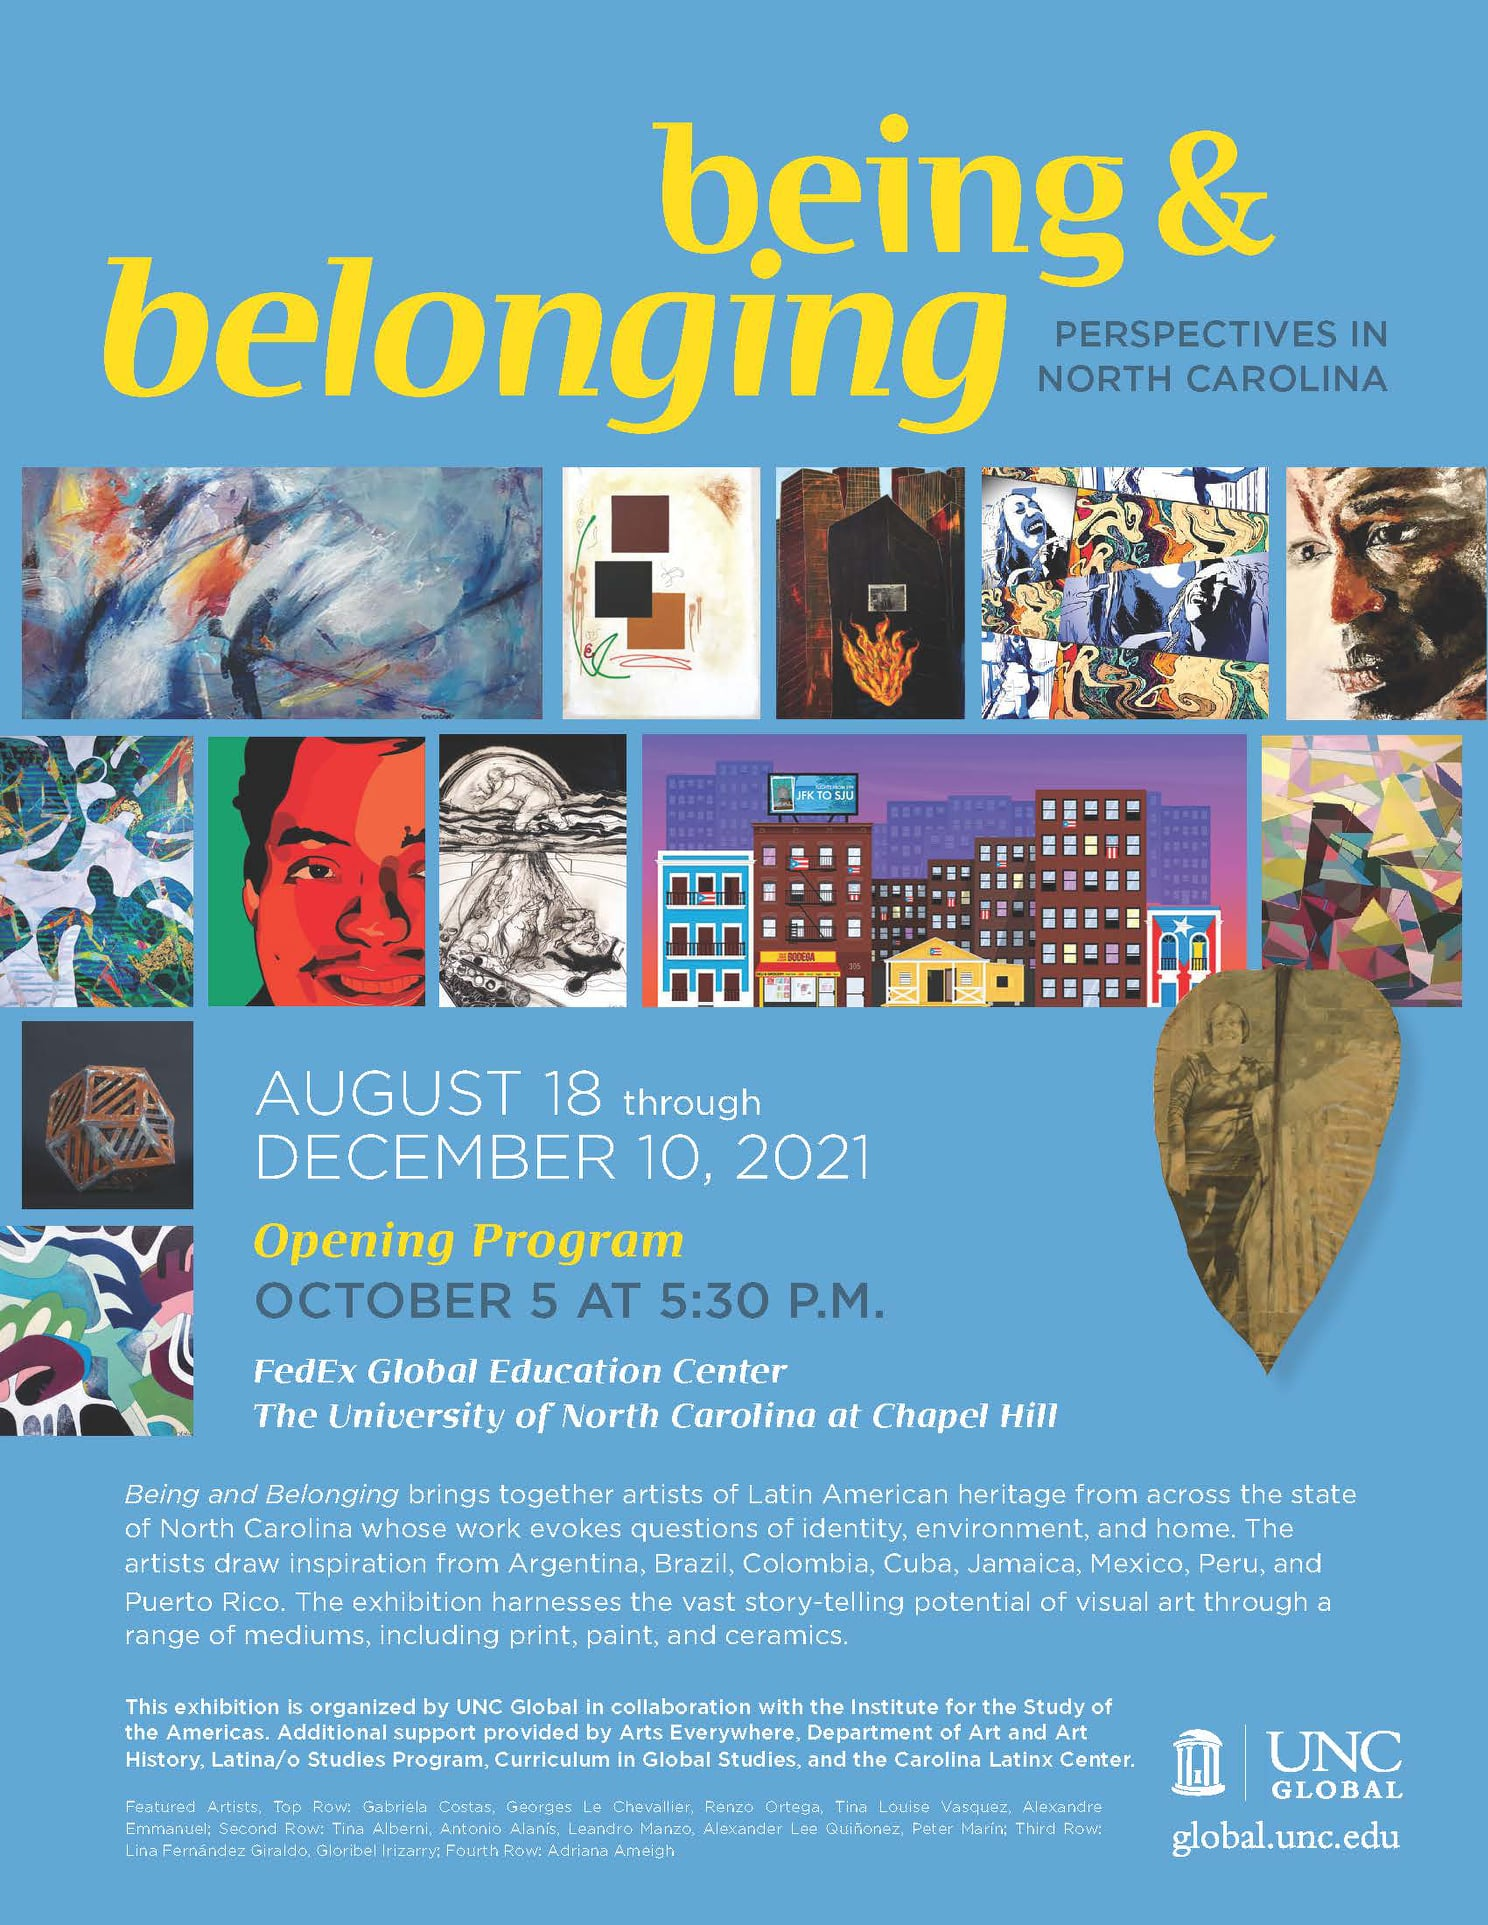 Being and Belonging: Perspectives from North Carolina